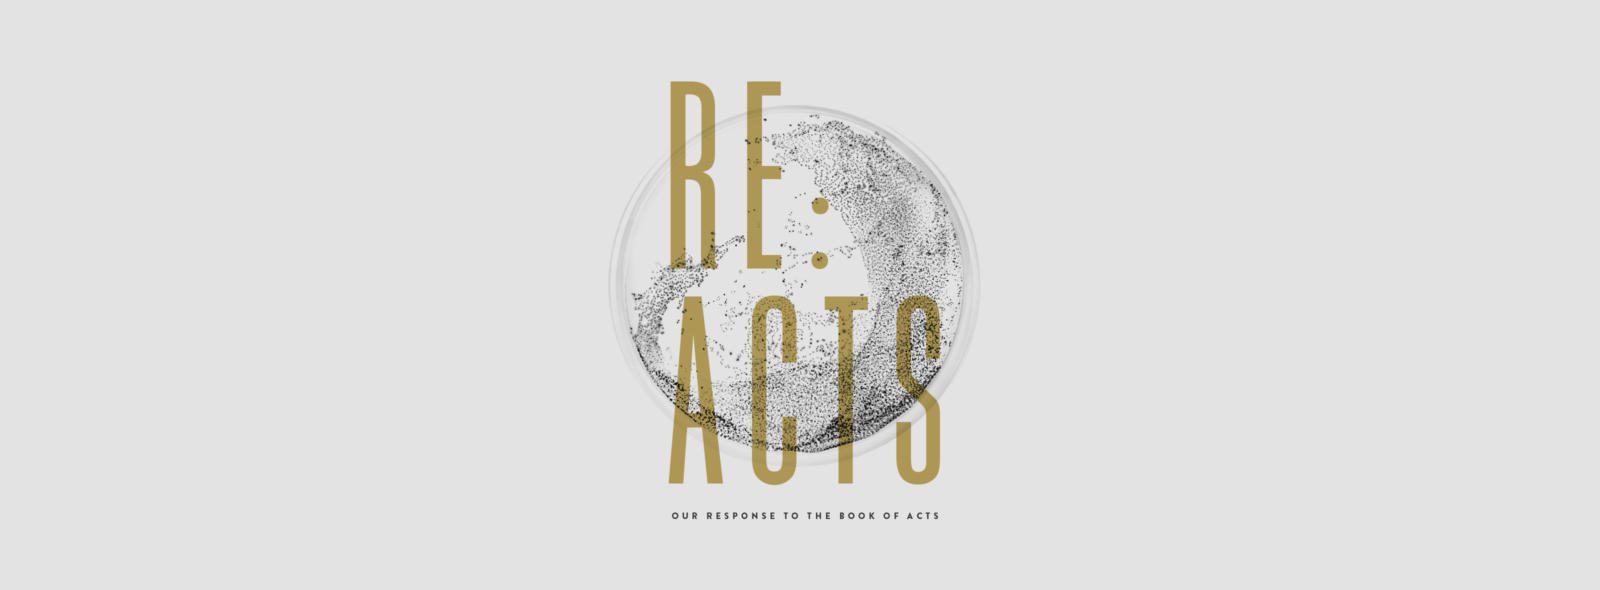 Re: Acts III | Our Response to the Book of Acts – Lindale